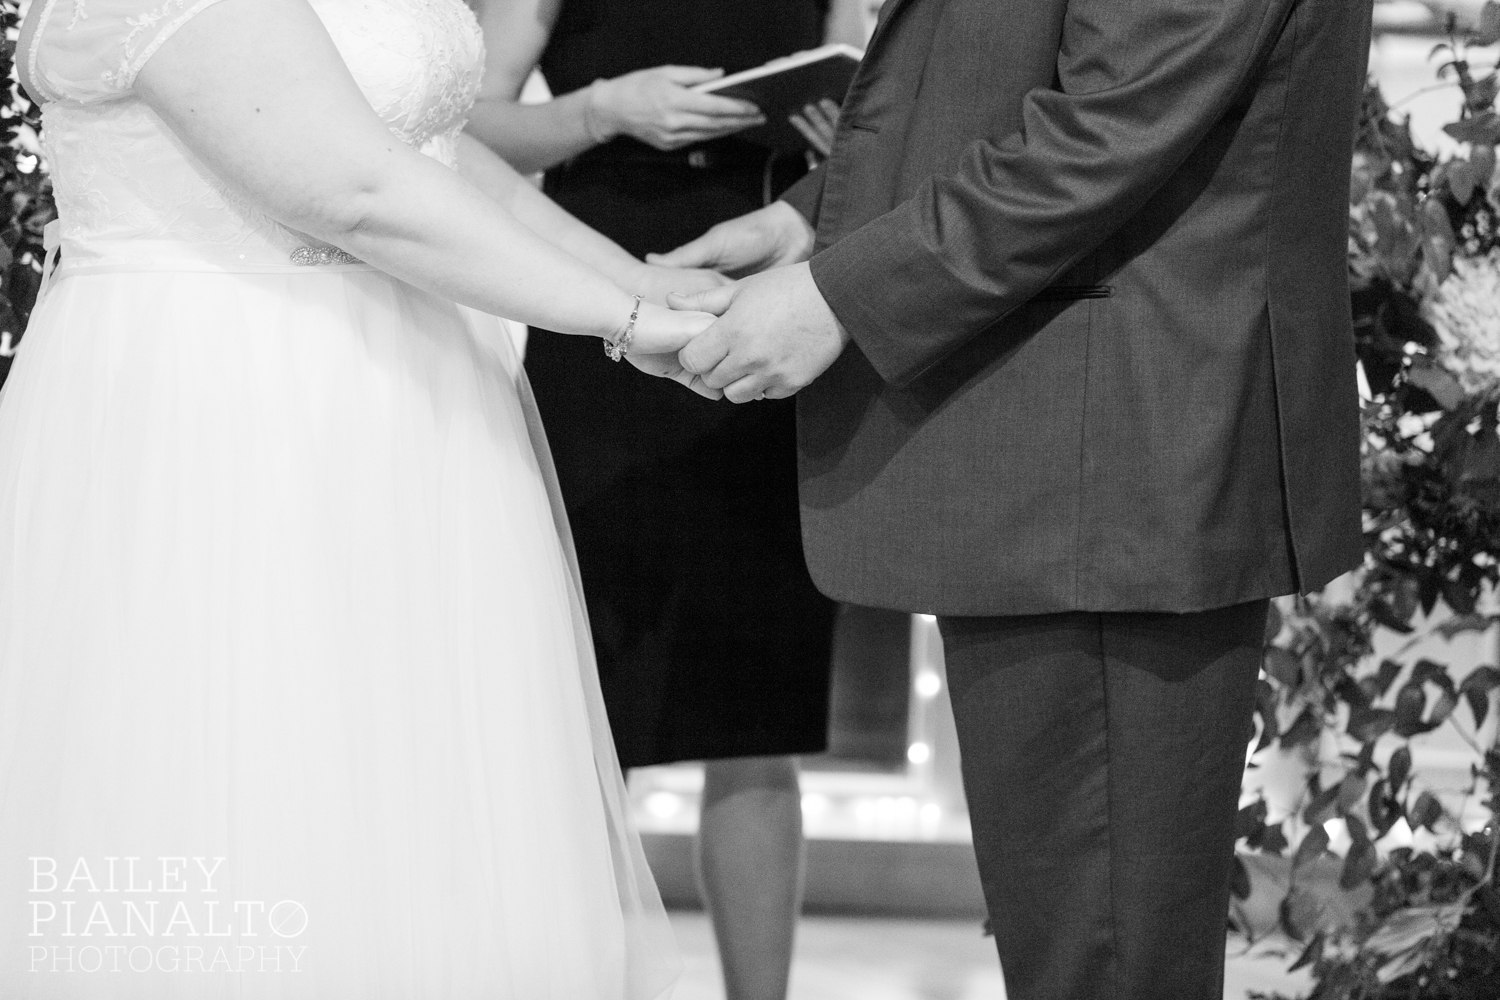 Wedding Ceremony at Purple & Gray Down-to-Earth Spring Wedding  | Uptown Theater | Kansas City, MO